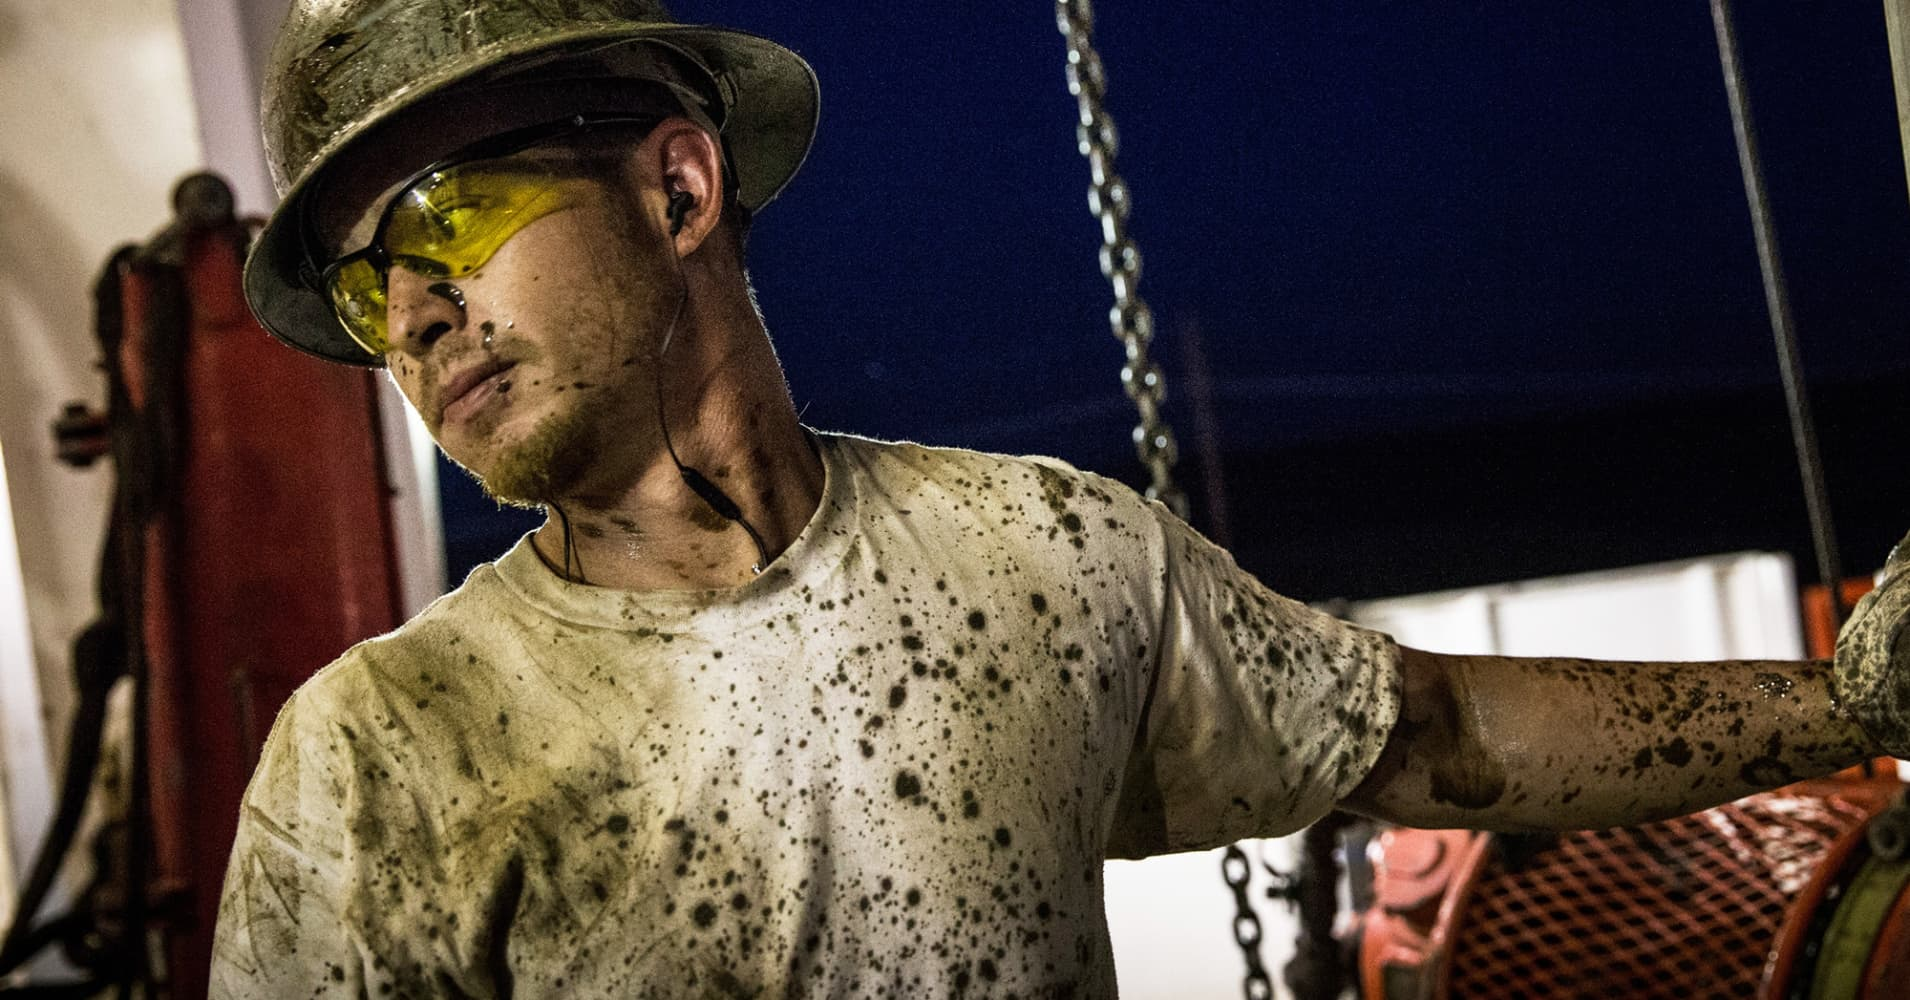 Wells Fargo's Scott Wren: Oil prices have 'dropped like a rock' but are finally nearing bottom